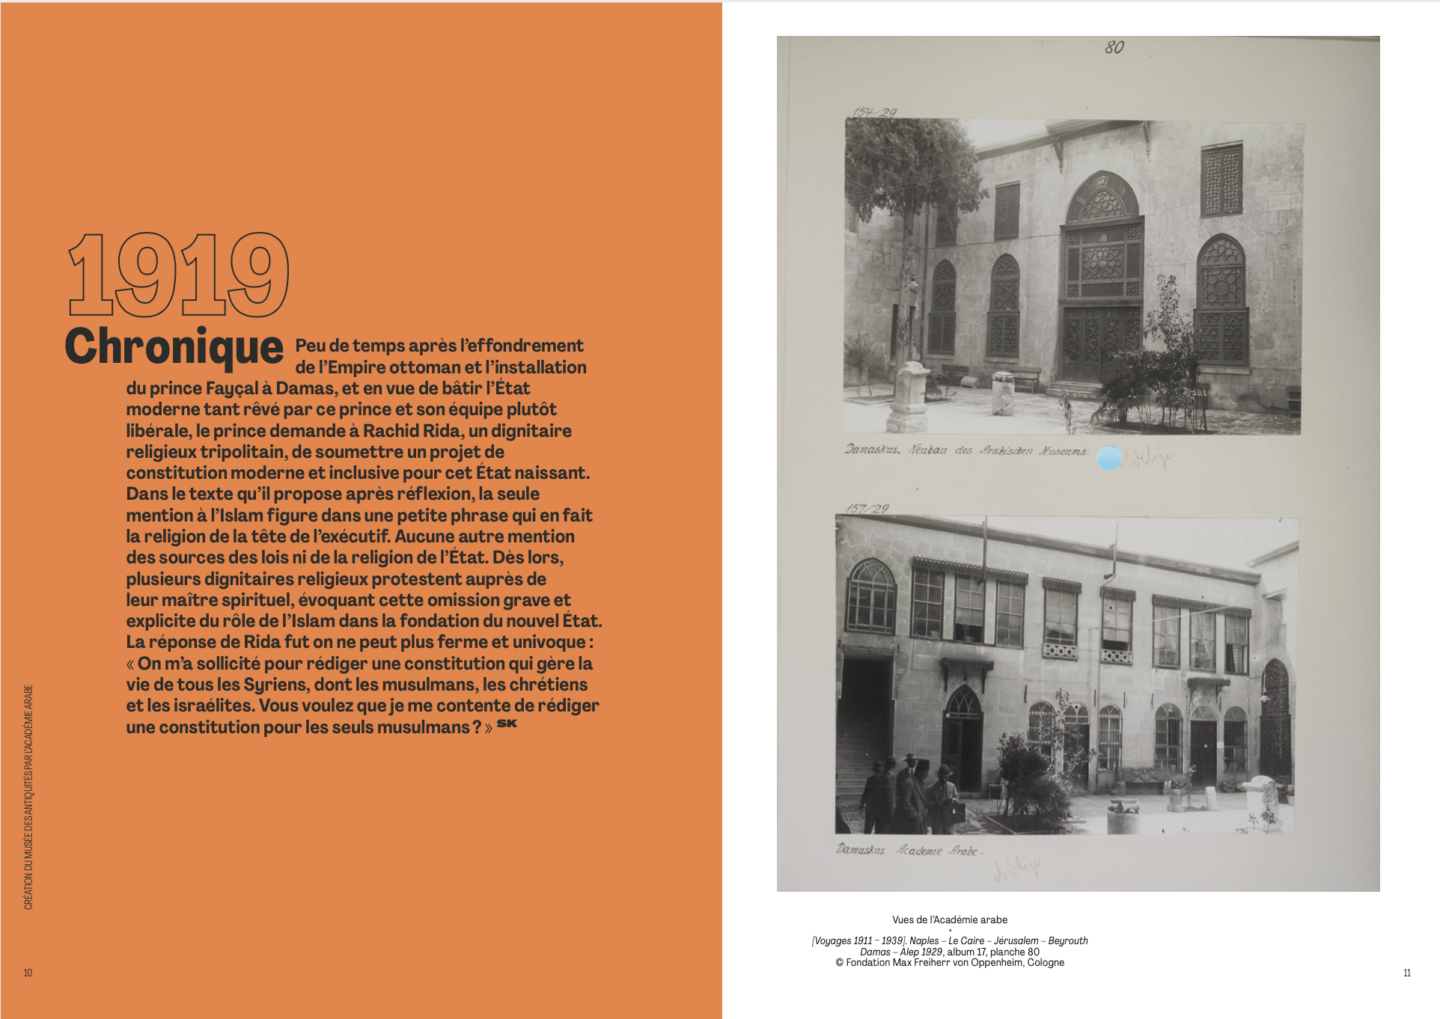 PRÉFACES TO A BOOK FOR A SYRIAN MUSEUM